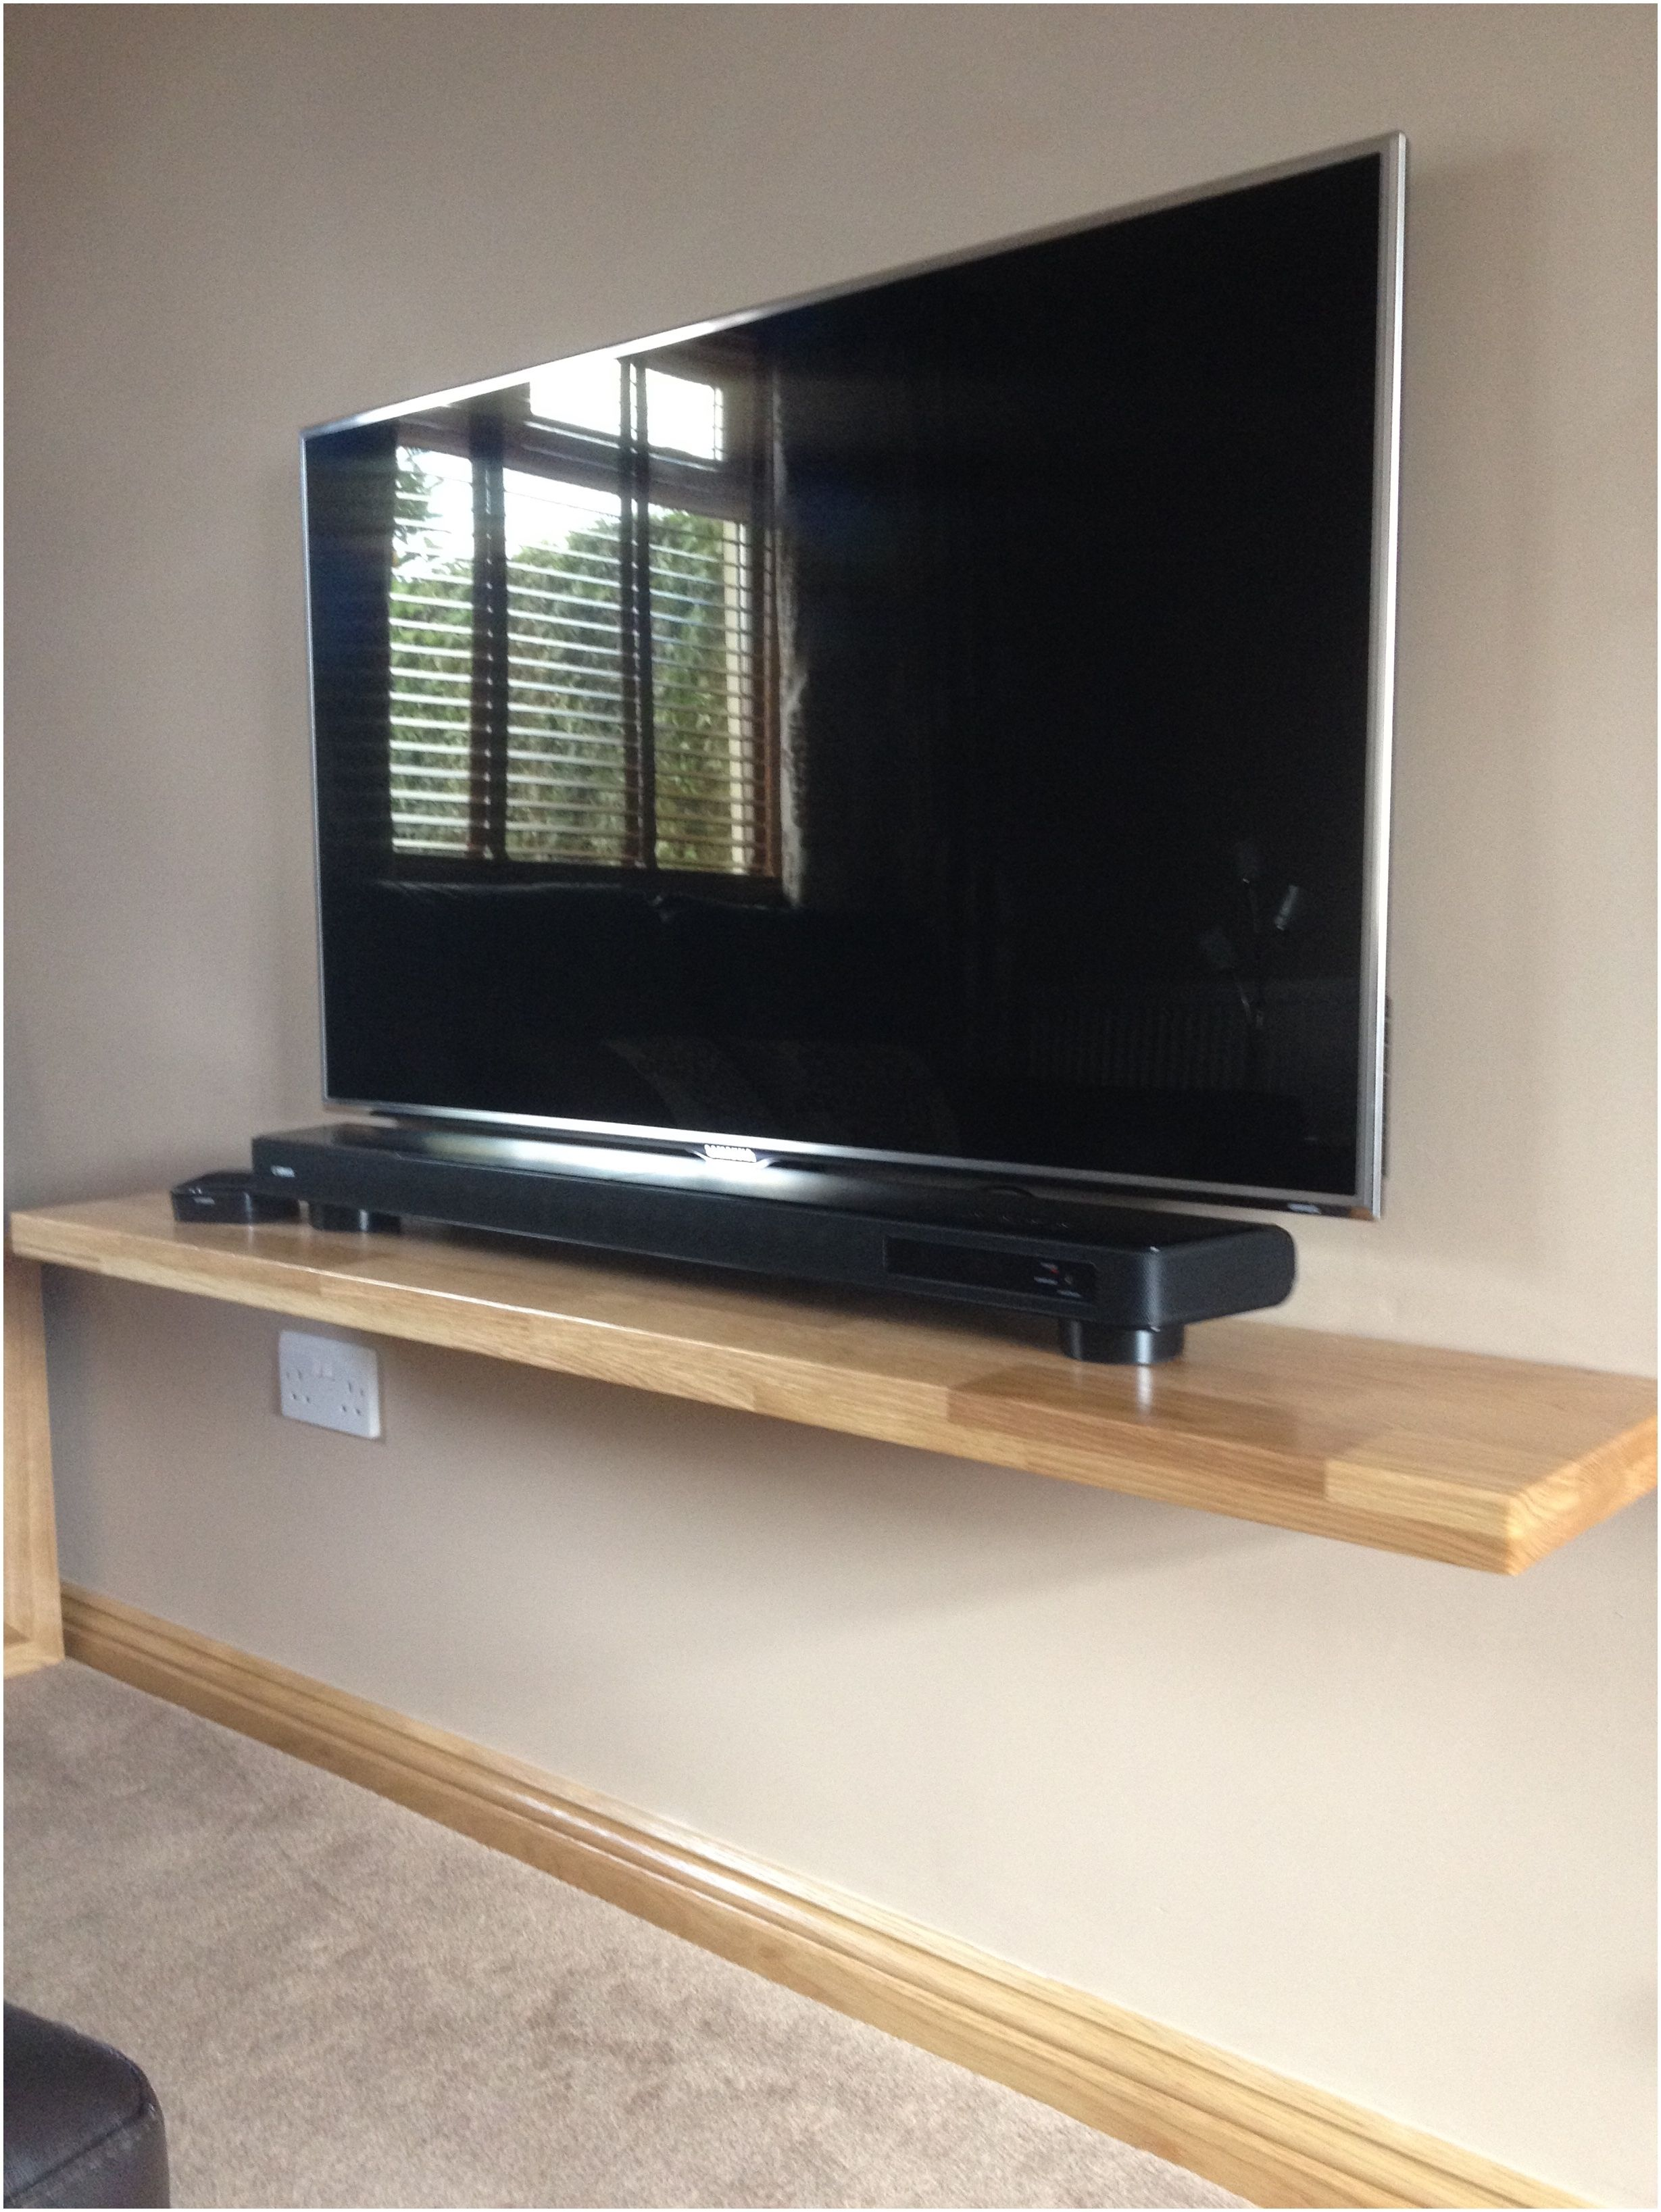 Floating Shelf Under Wall Mounted Tv